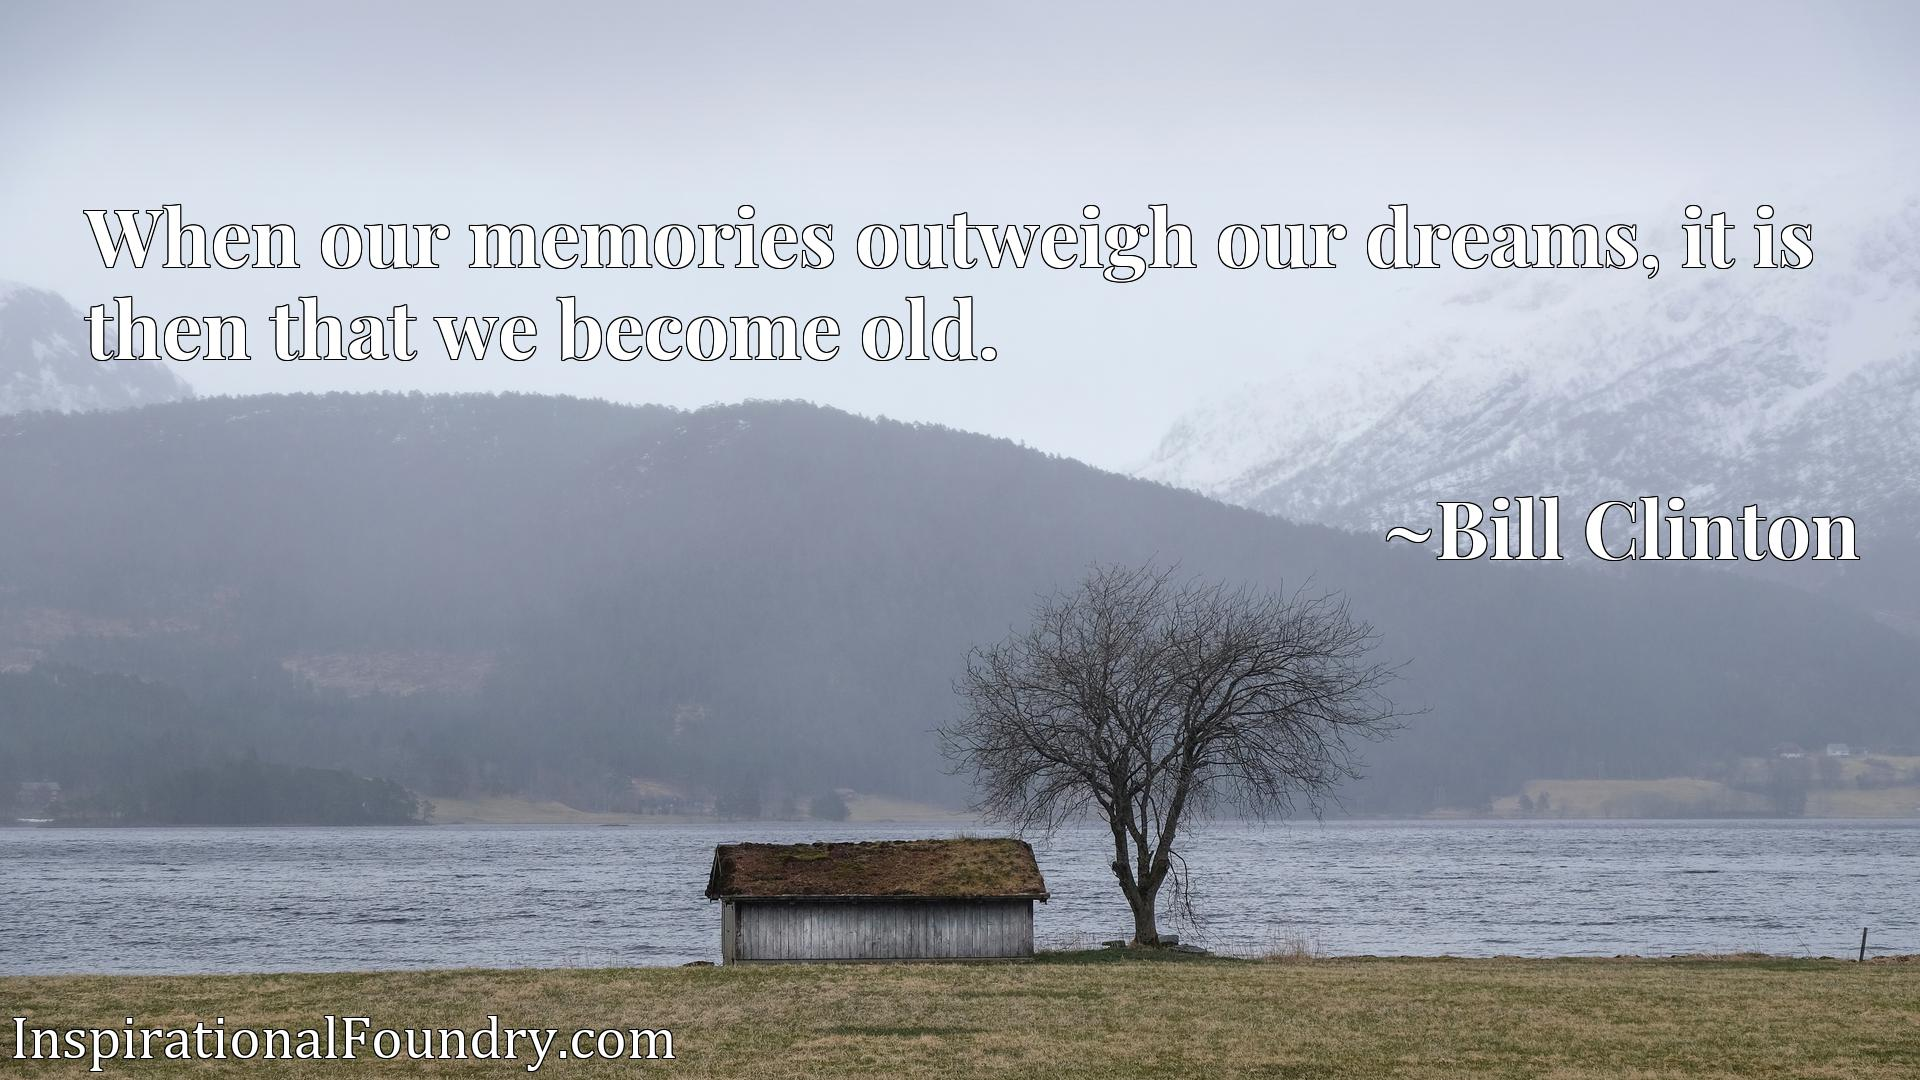 When our memories outweigh our dreams, it is then that we become old.